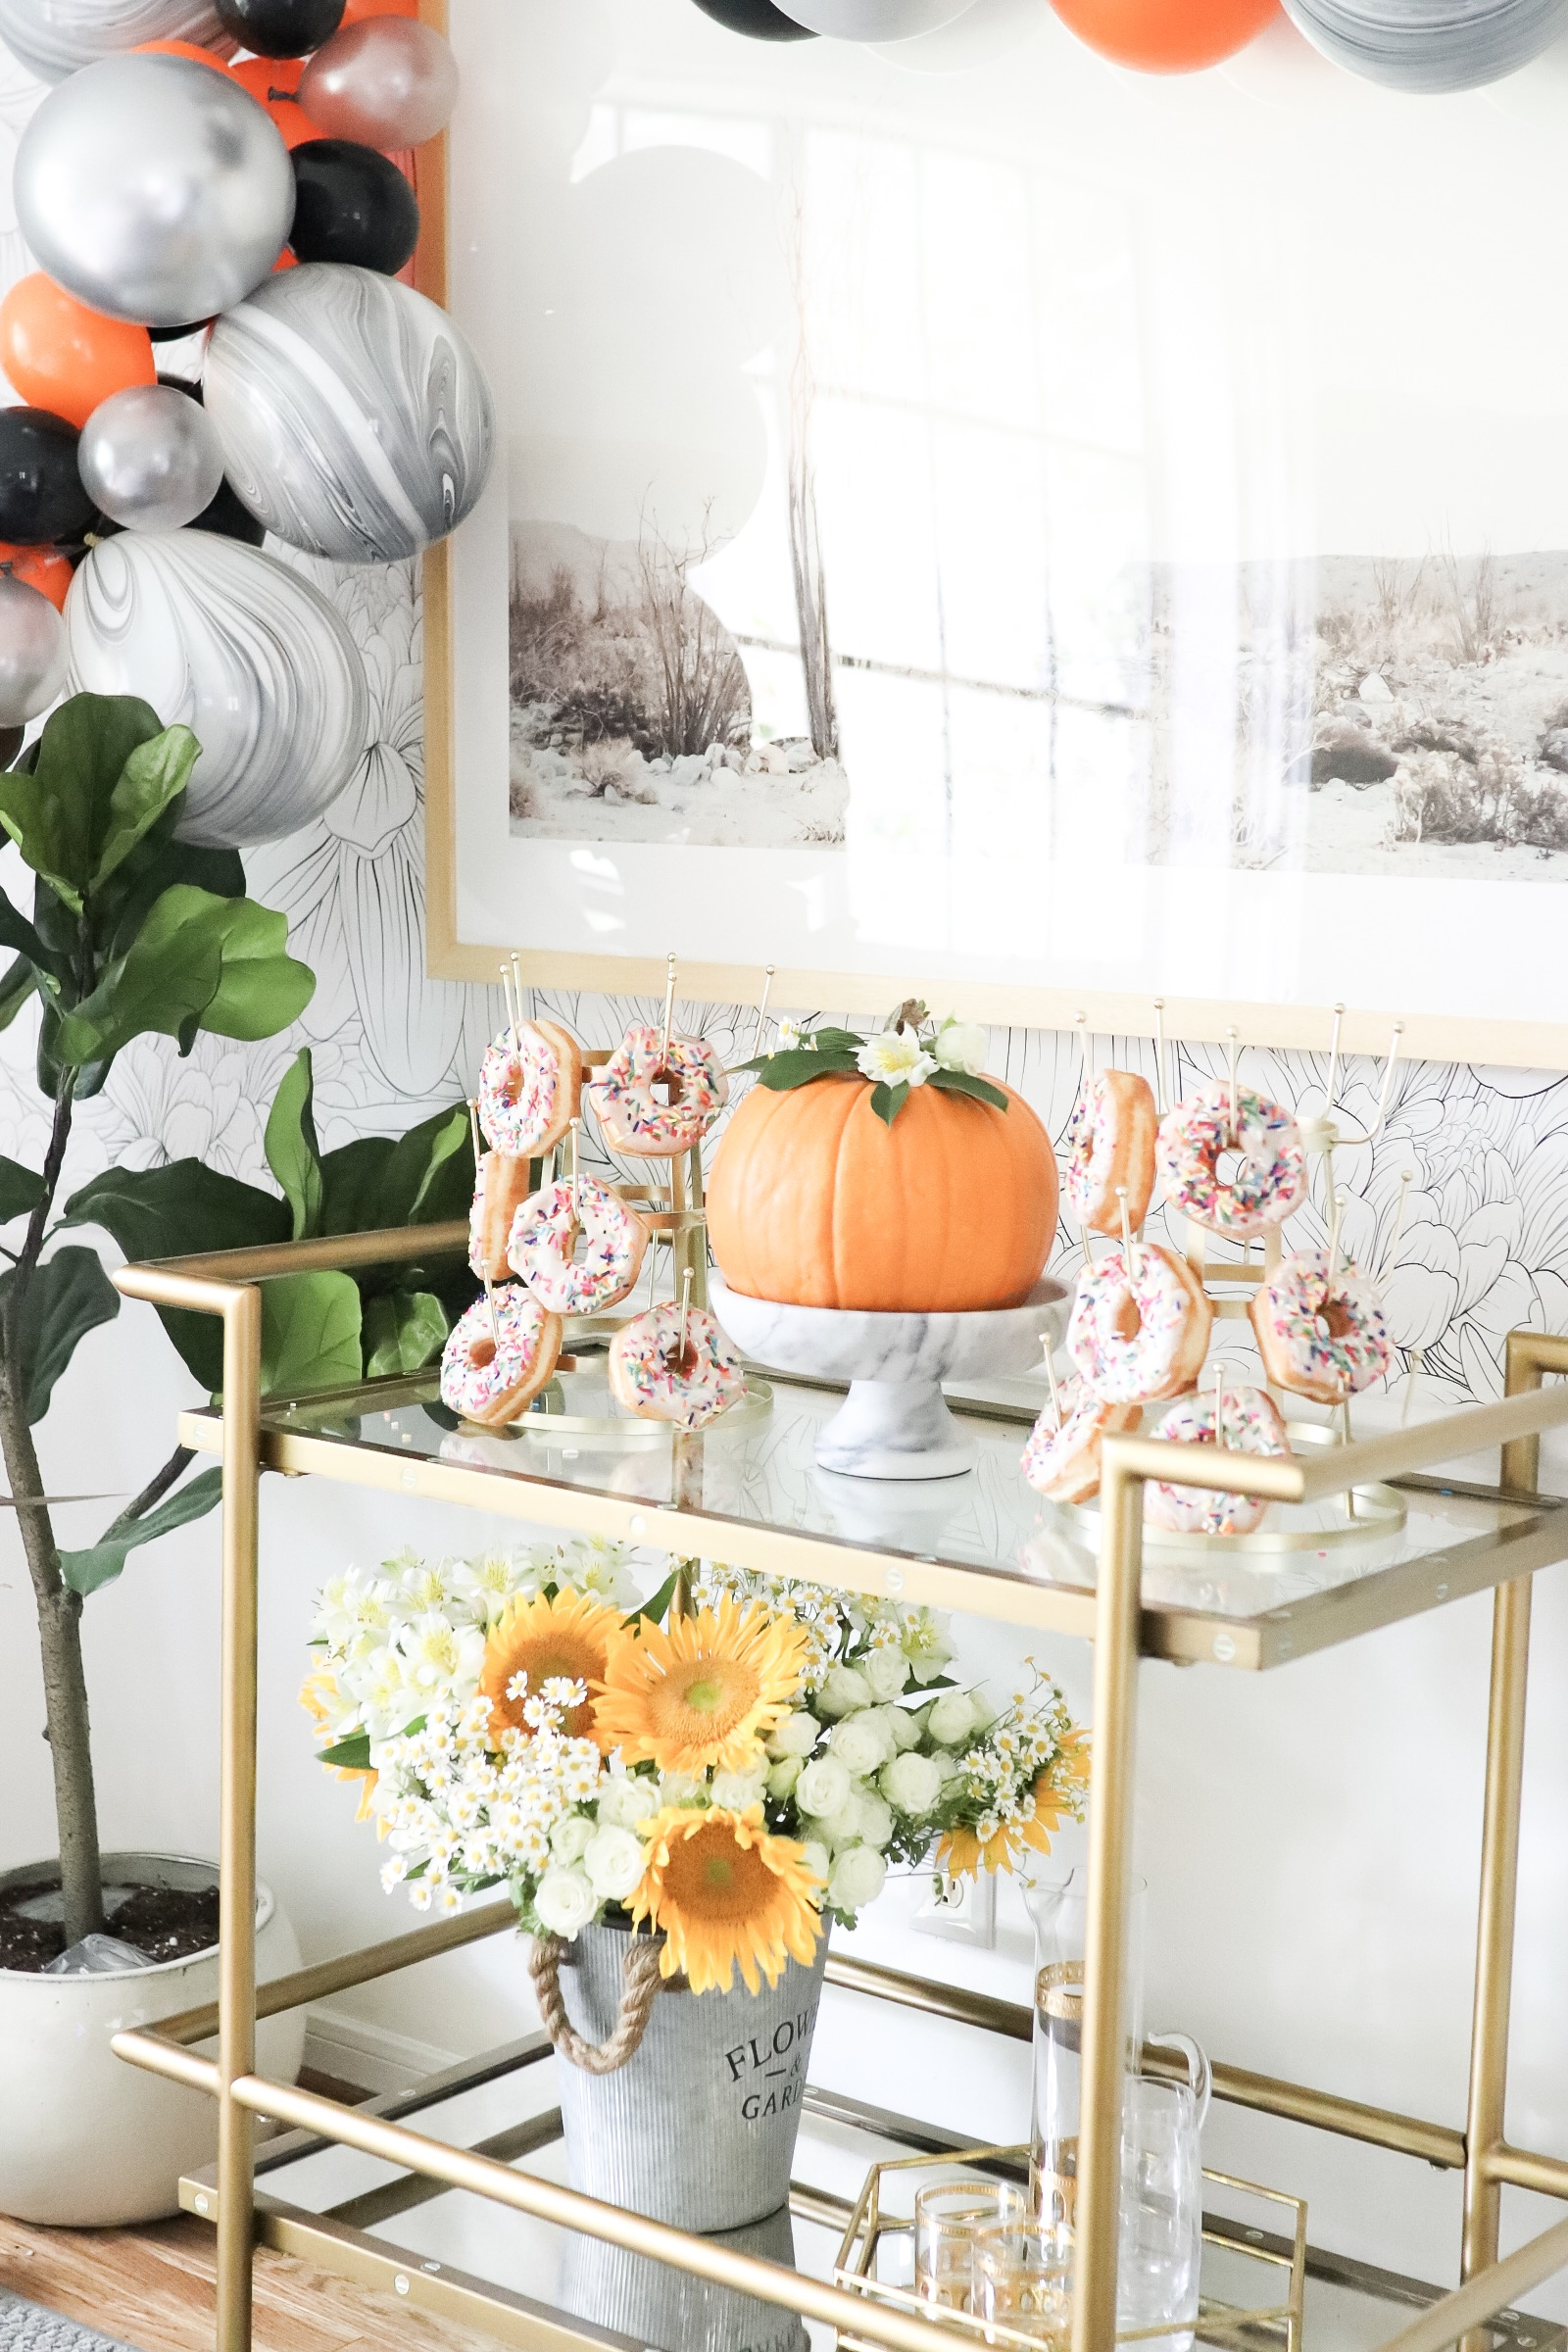 Fall Harvest Donut Party Dining Room Set Up in 30 Minutes Ballon Garland Halloween Donut Party